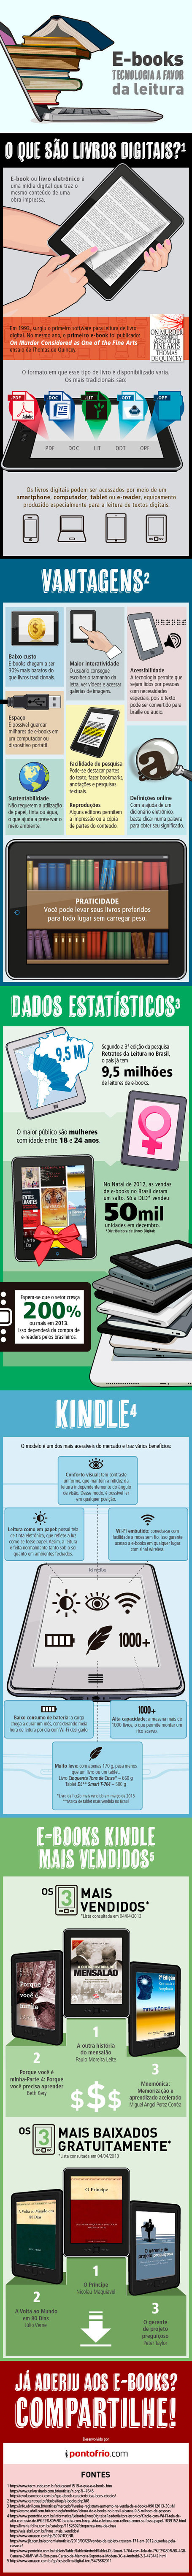 E-Books: tecnologia a favor da leitura | Litteris | Scoop.it